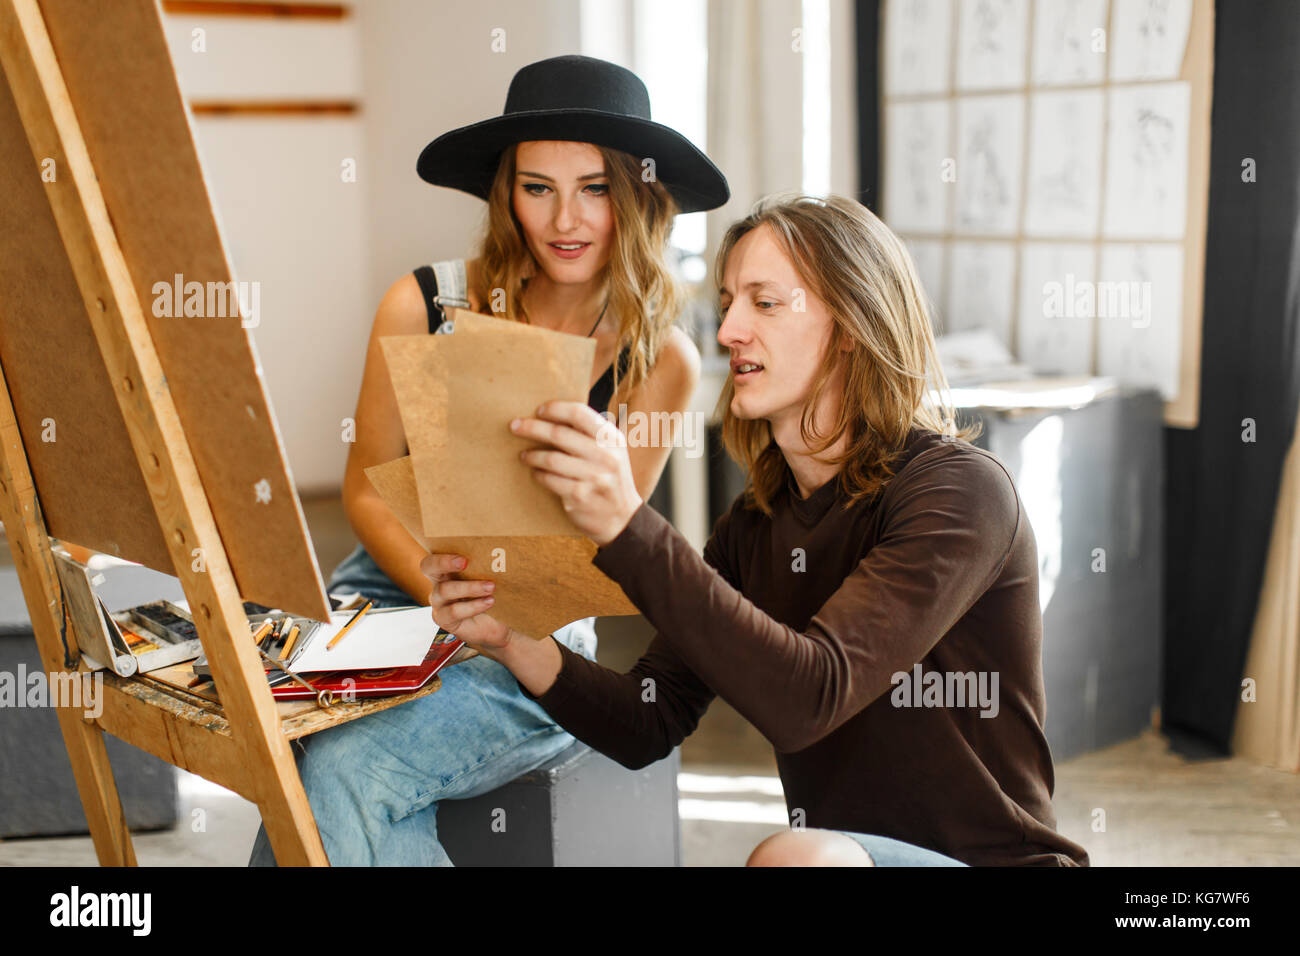 Artist Consult his Colleague while Drawing - Stock Image